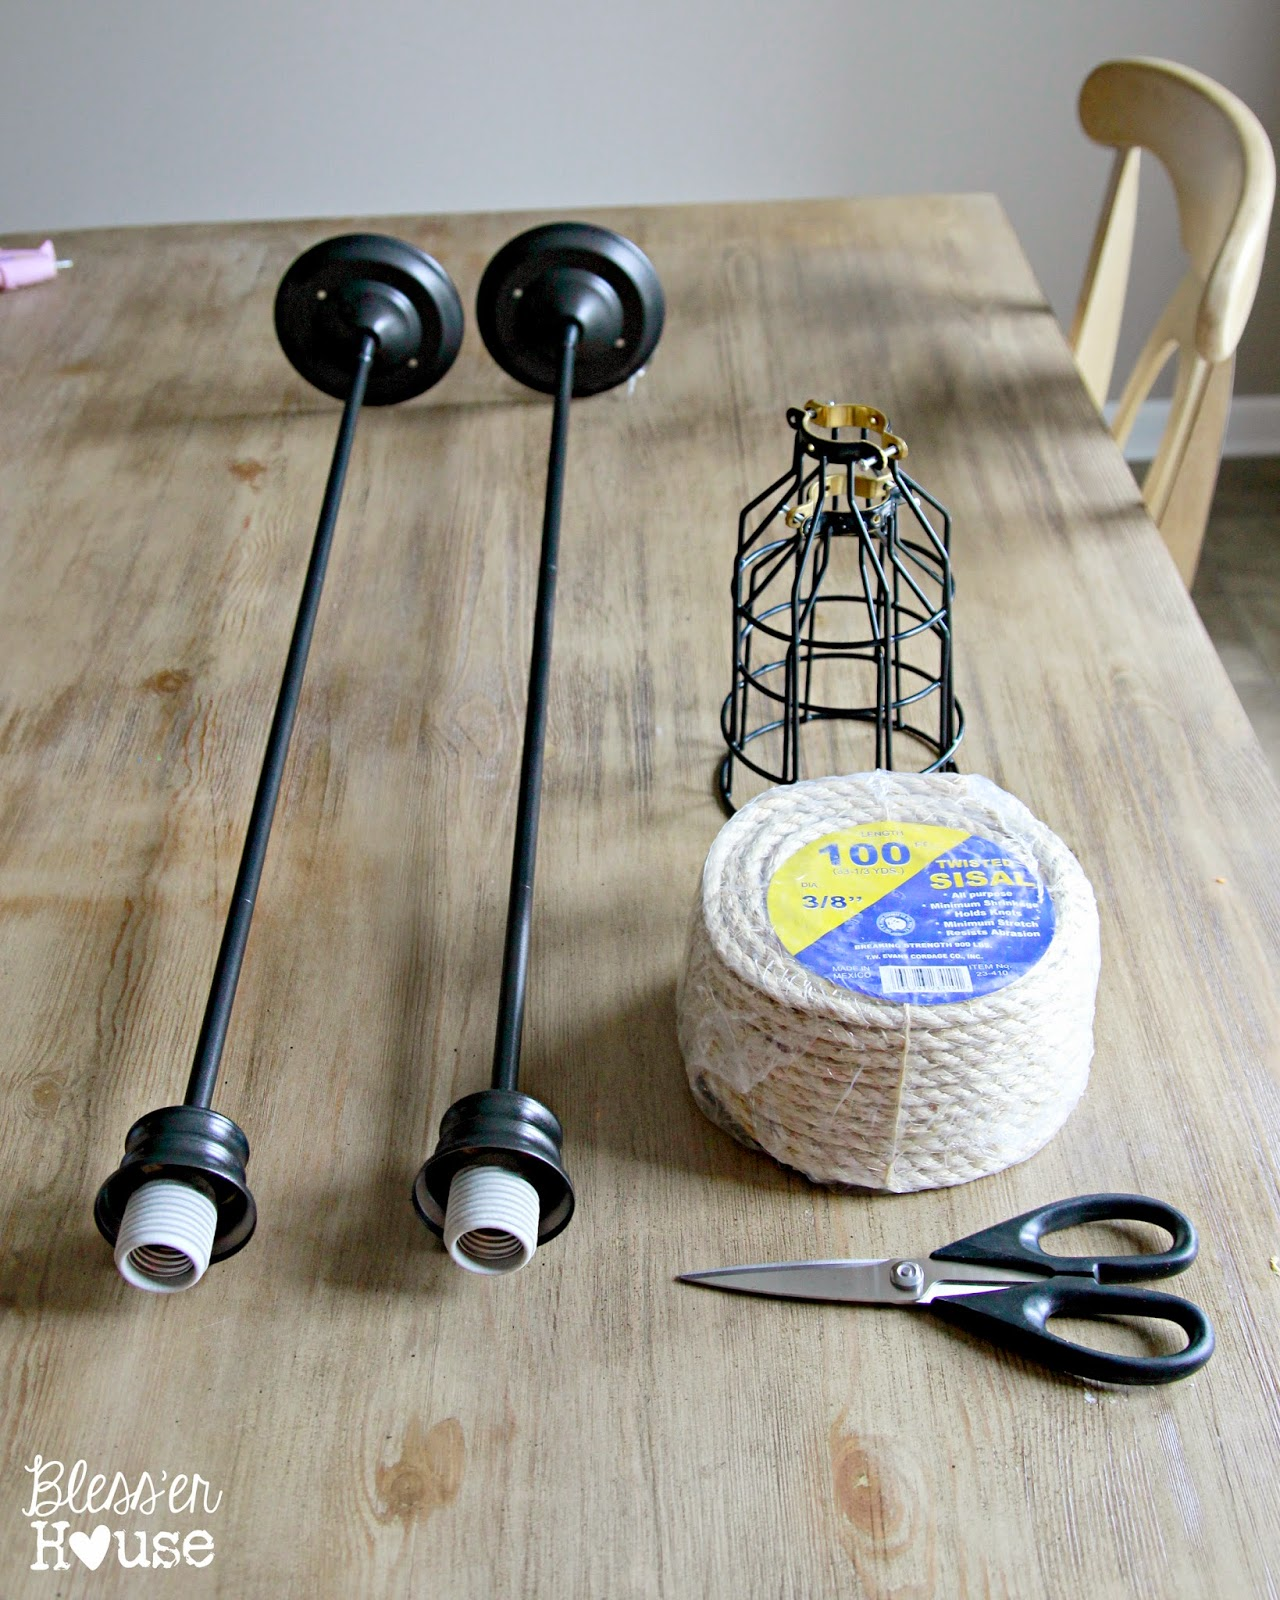 Diy industrial pendant light for under 10 bless 39 er house for Industrial lamp kit